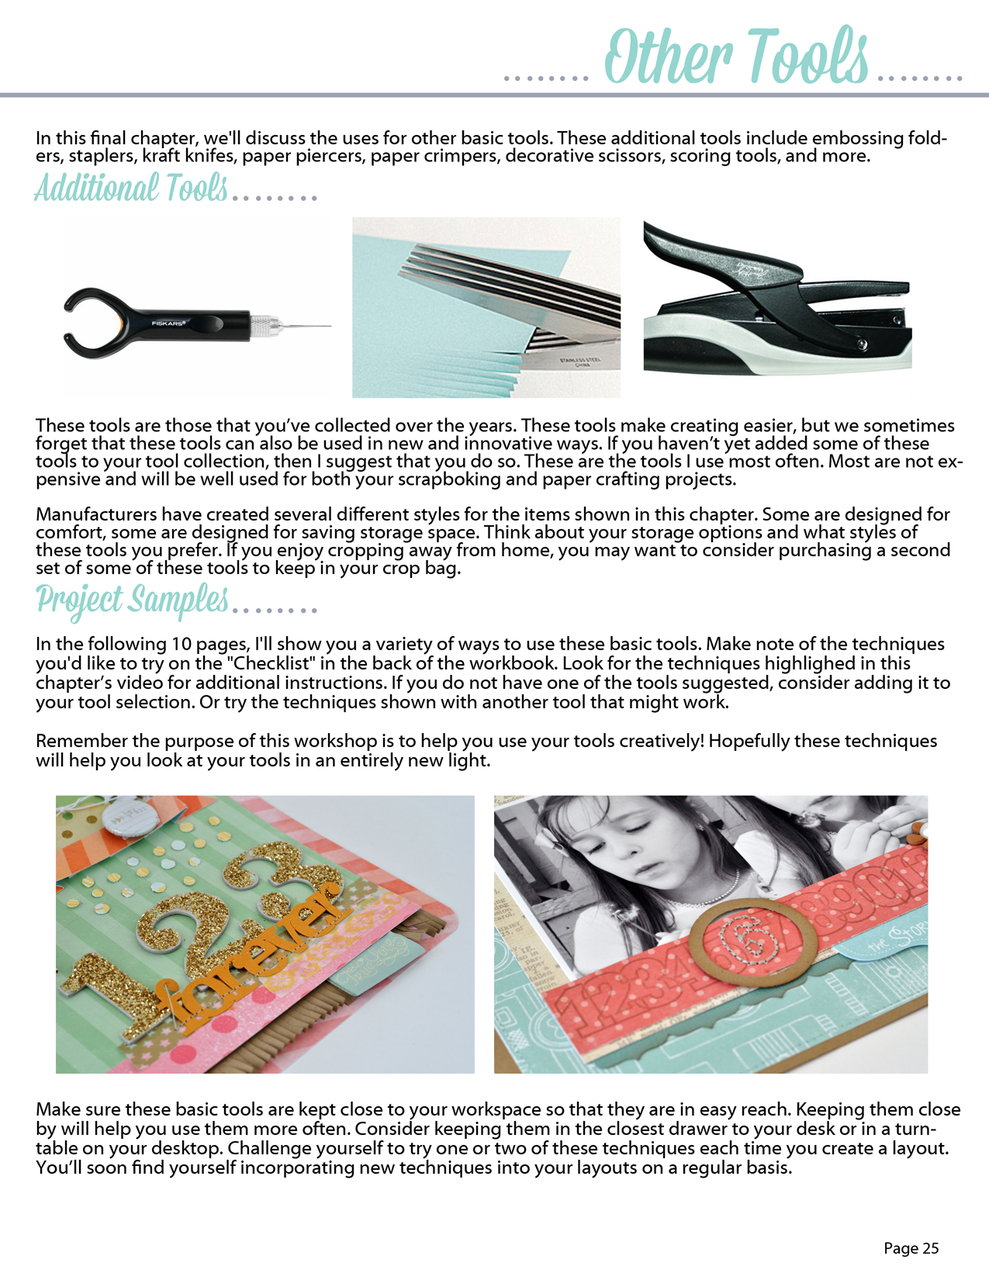 Tool School Scrapbooking Ebook